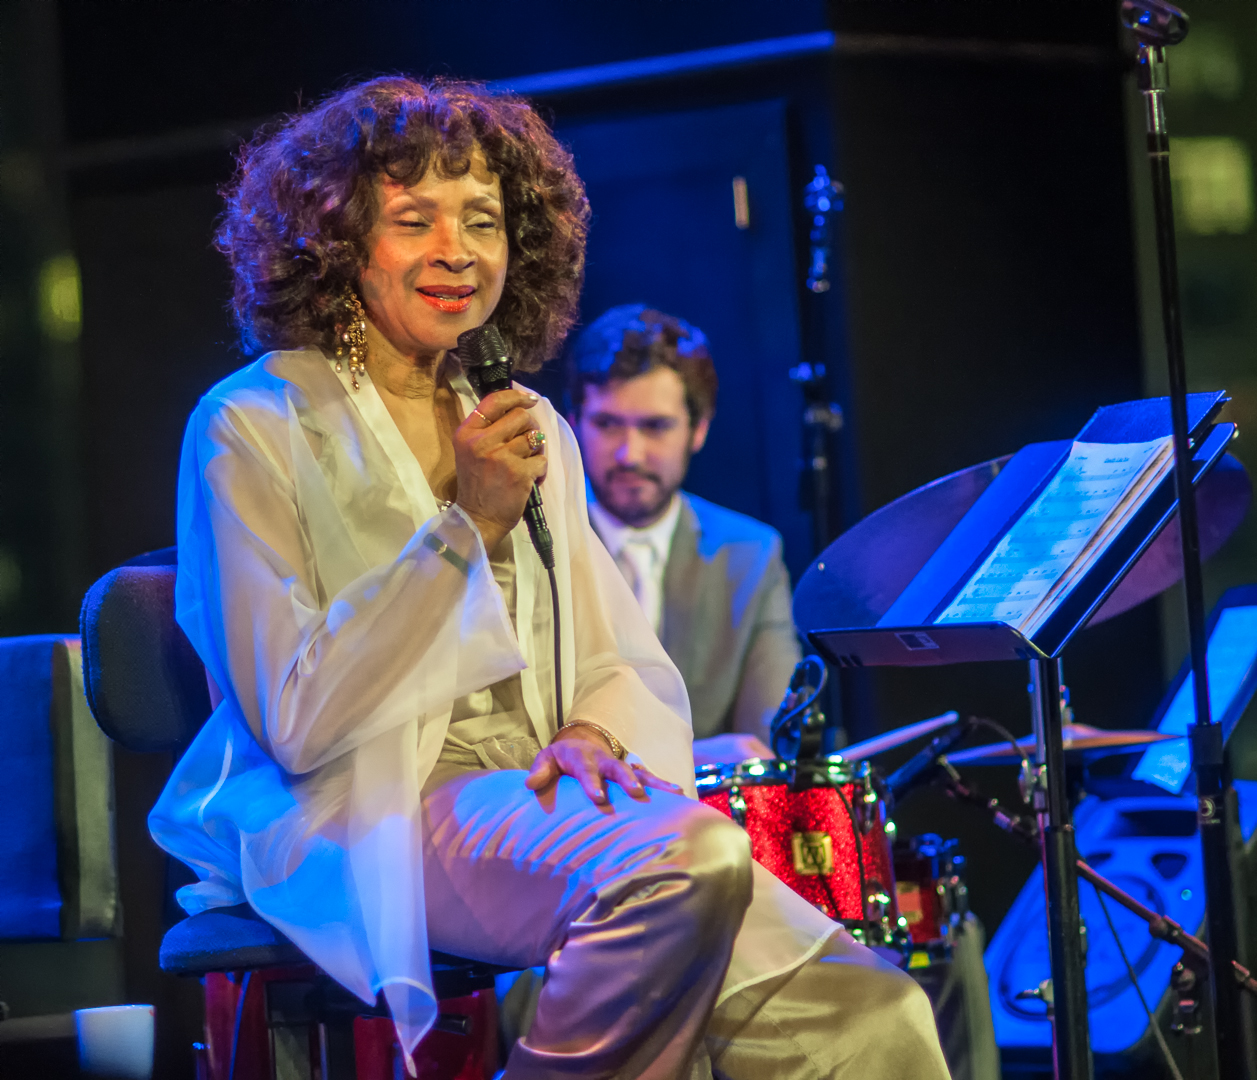 Mary Stallings and Kevin Kanner at Dizzy's Club